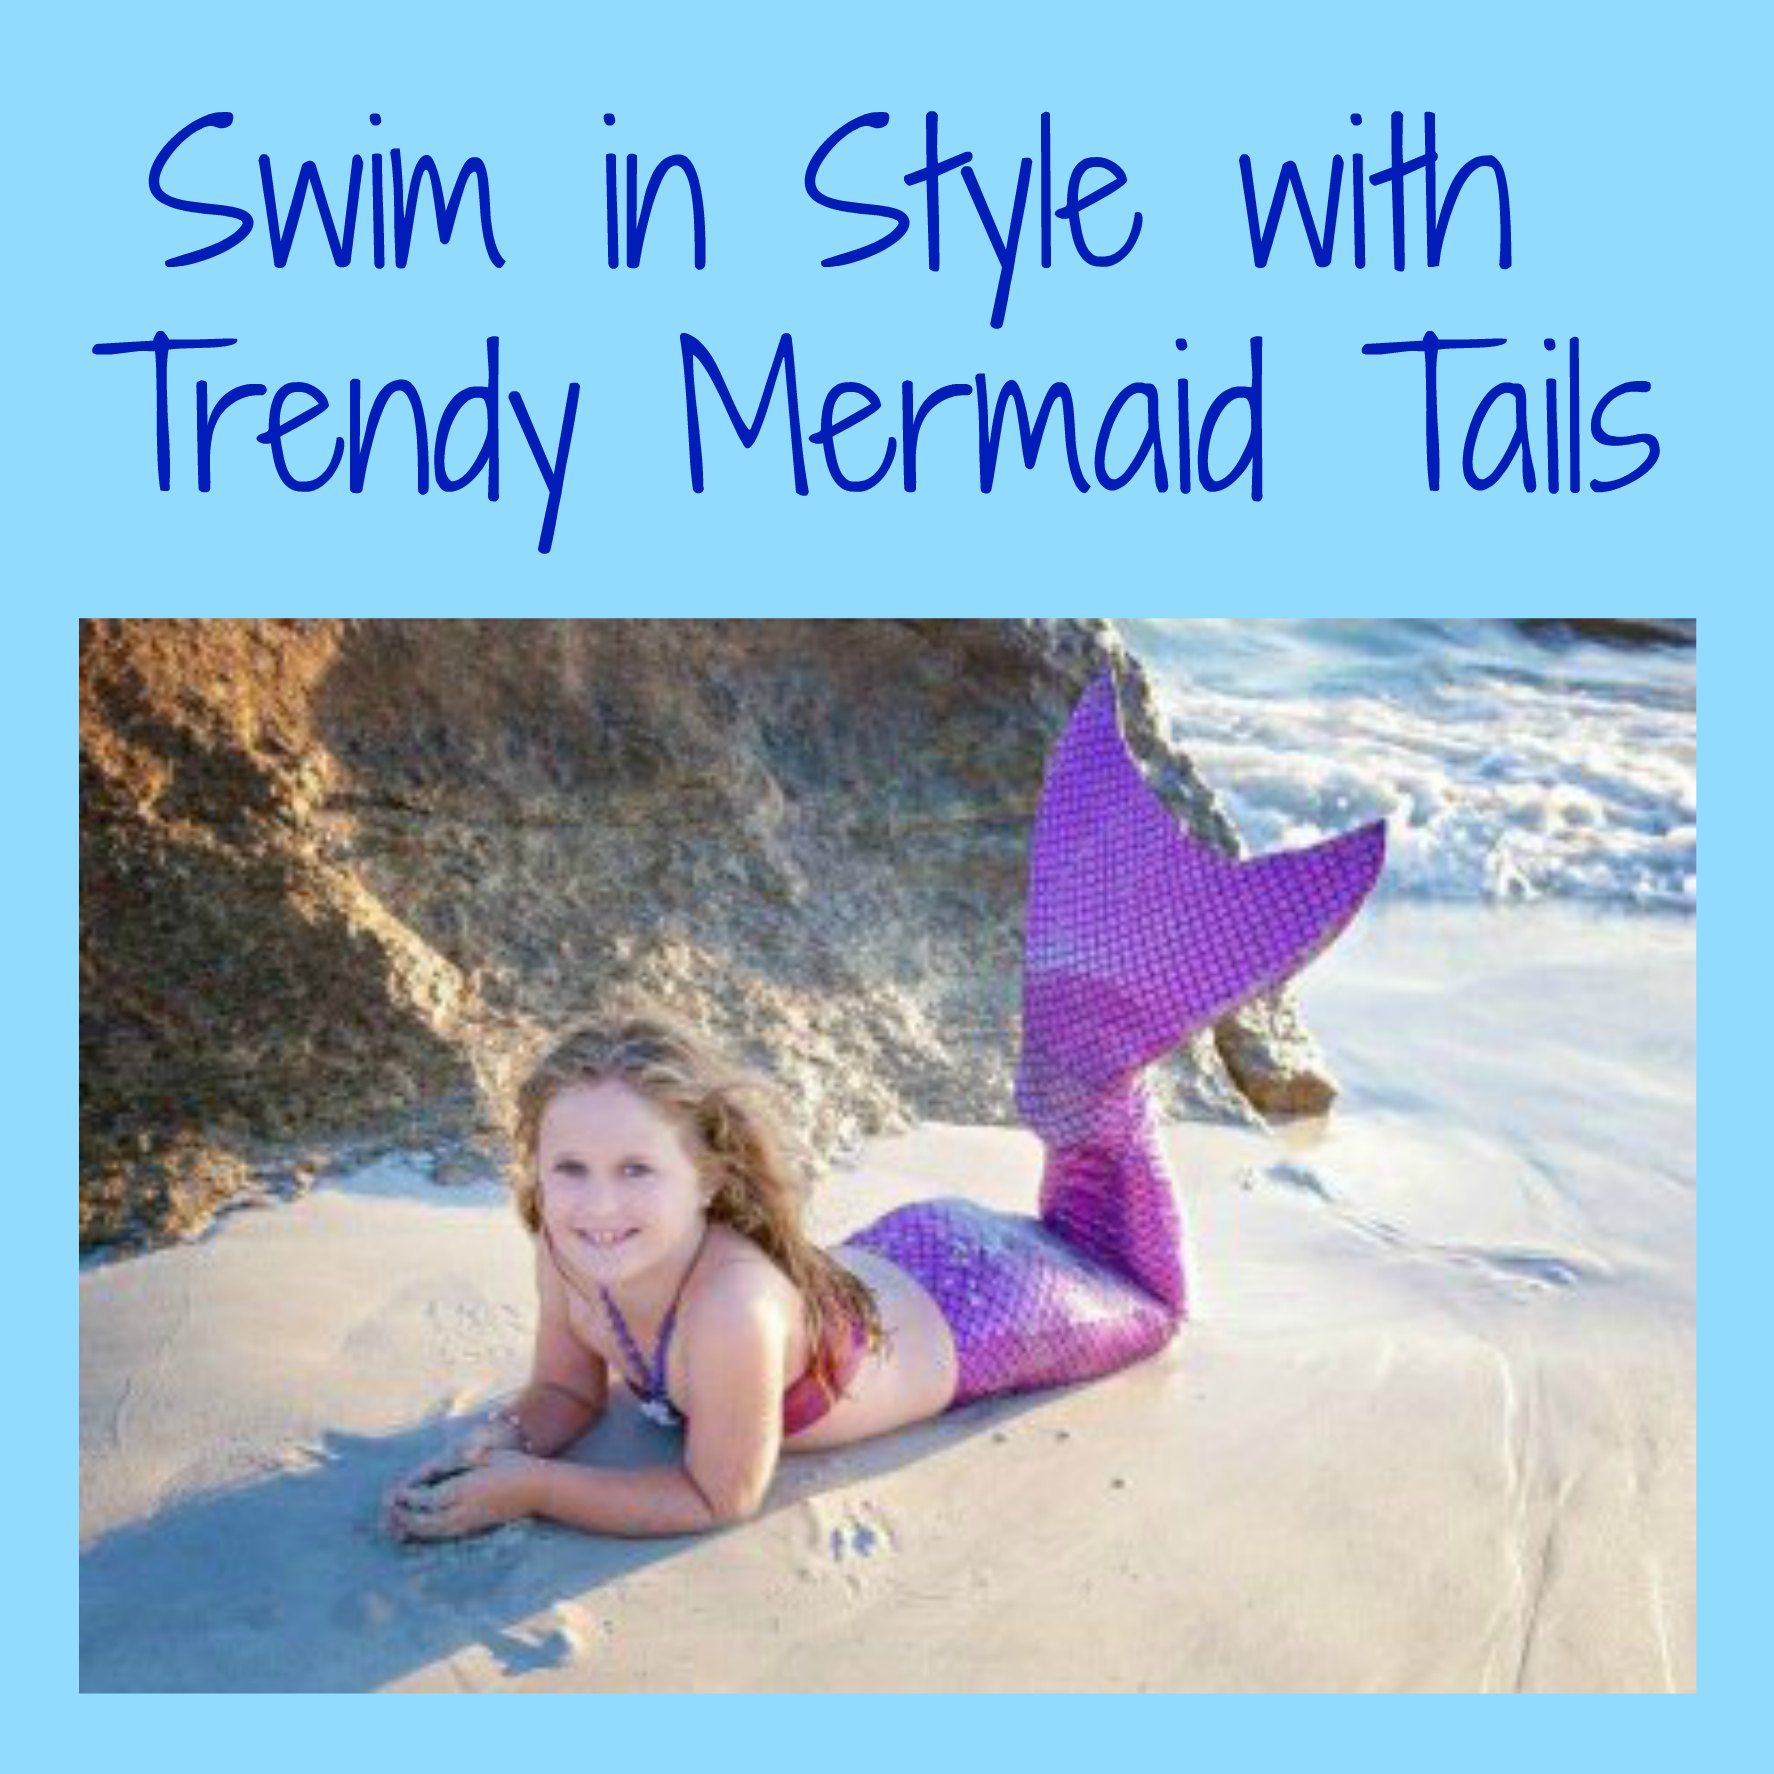 Mermaid tales